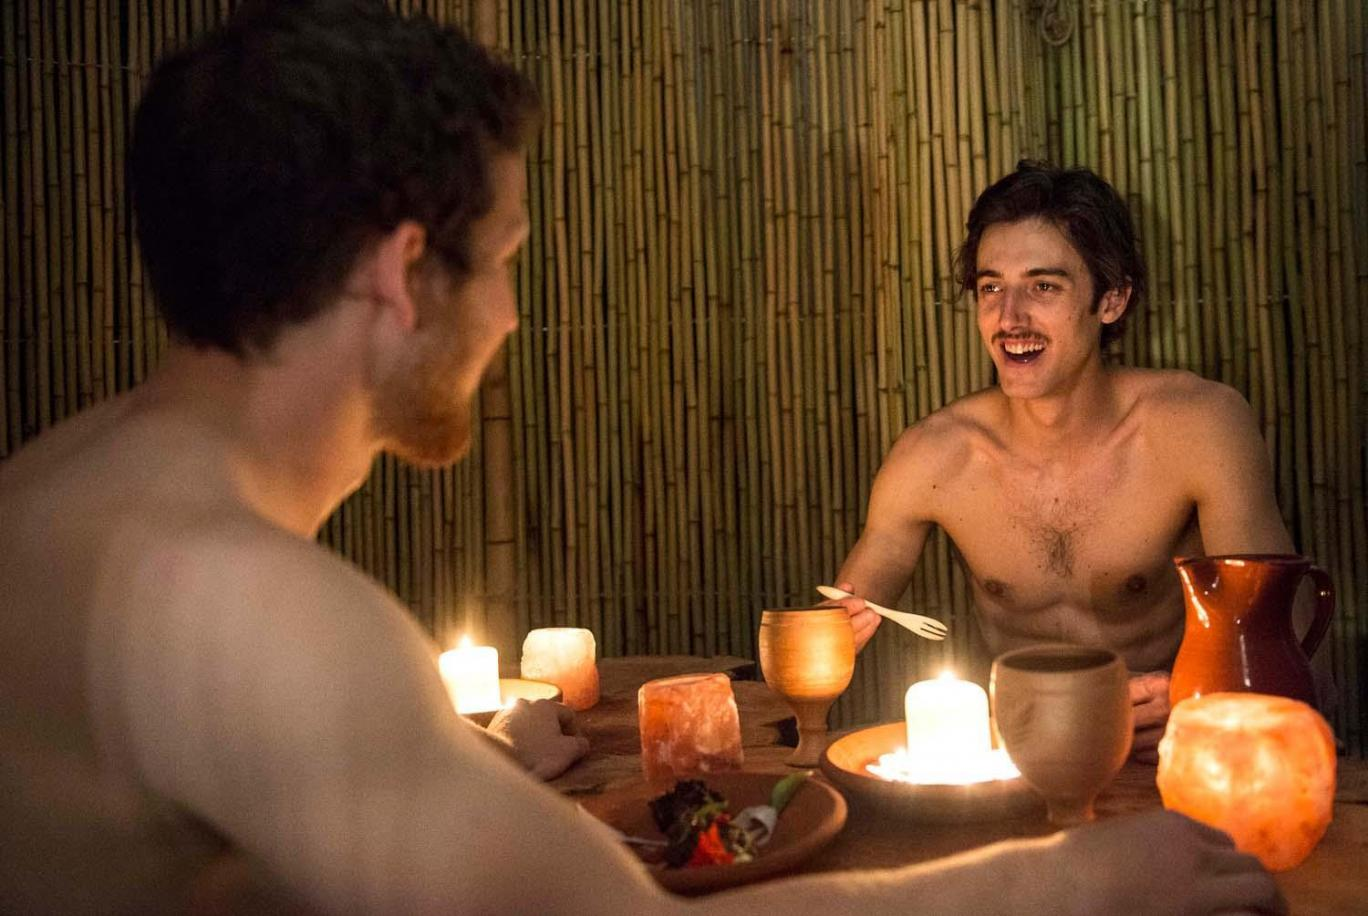 The Bunyadi: London's first naked restaurant